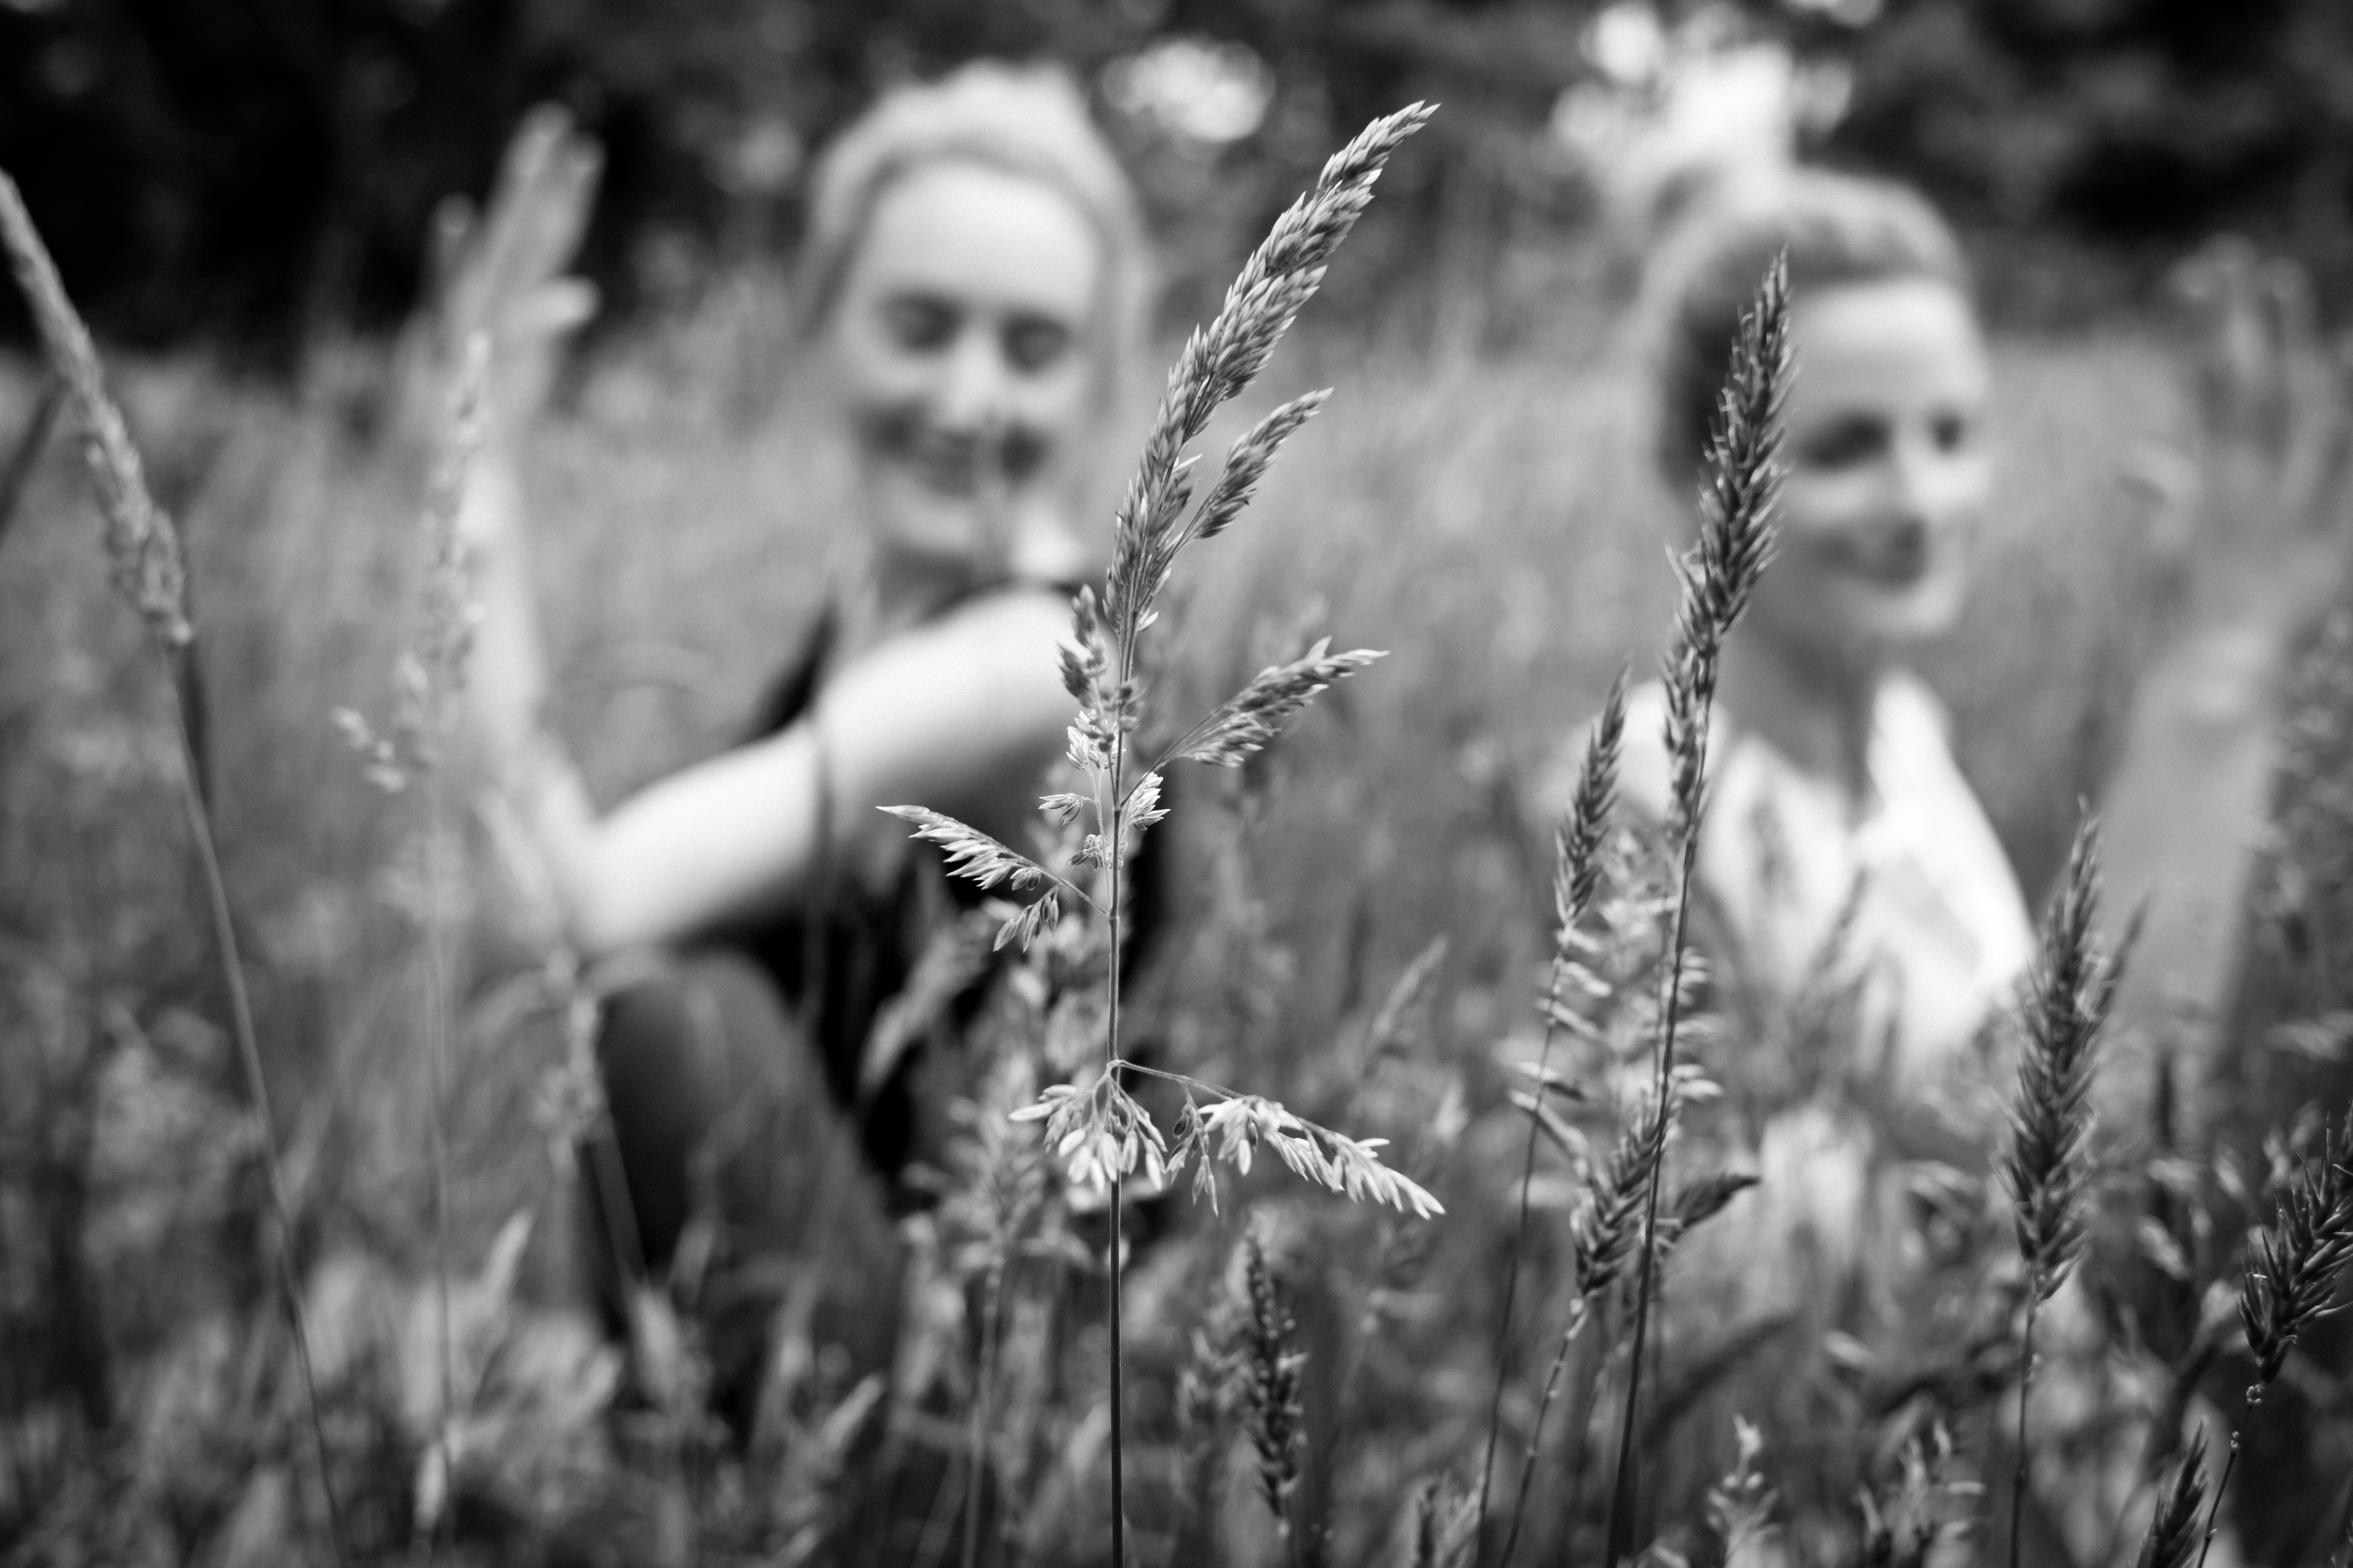 Yoga in a field near Upwey